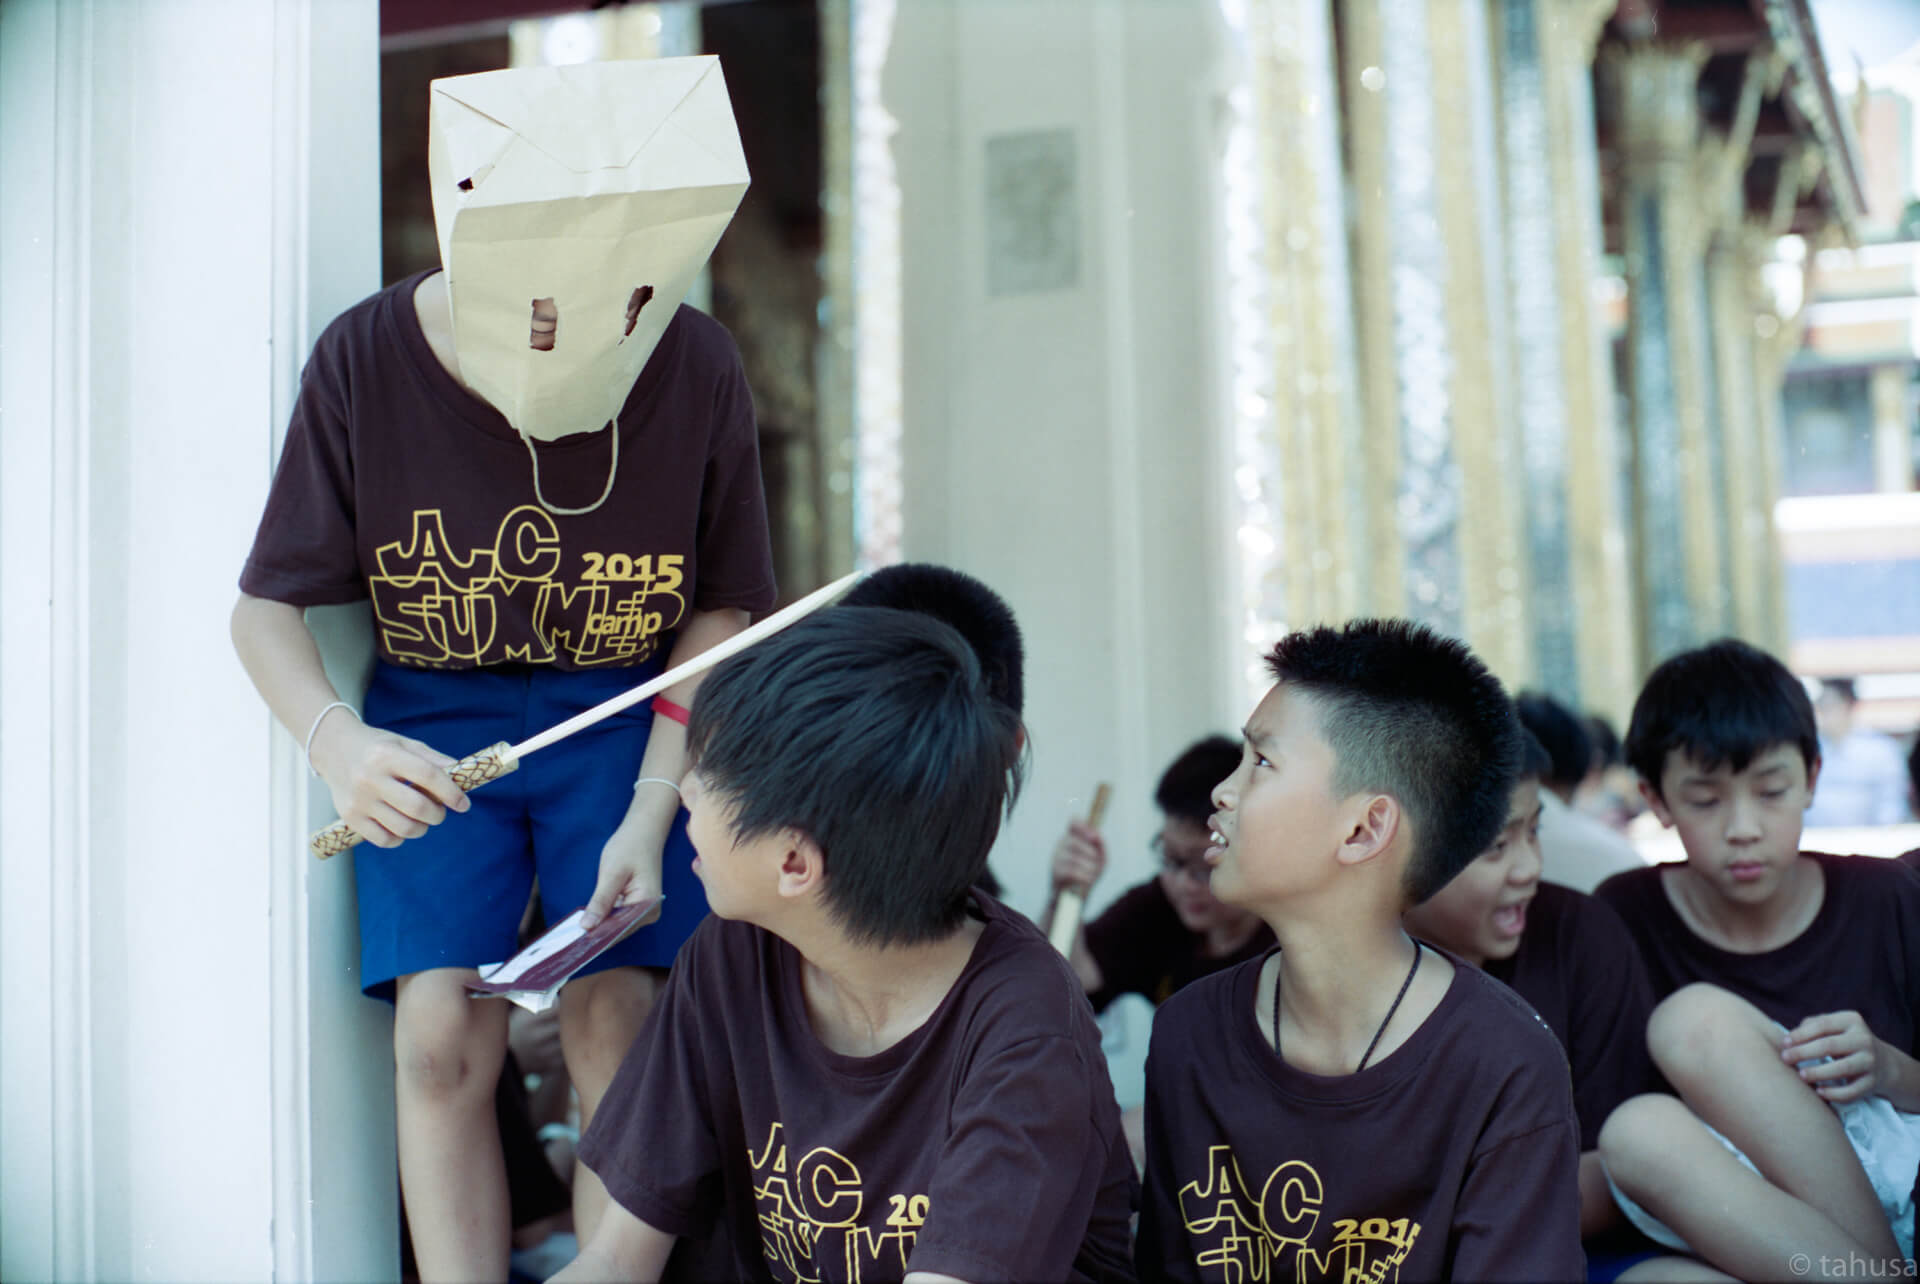 School-students-visiting-palace-in-bangkok-thailand-wearing-a-paper-bag-pretending-monster-with-shiny-gold-decoration-interior-street-snap-hk-cinestil-cine-cinestill50-50D-film-analog-leica-m2-Noctilux-50mm-f1-e58-v1